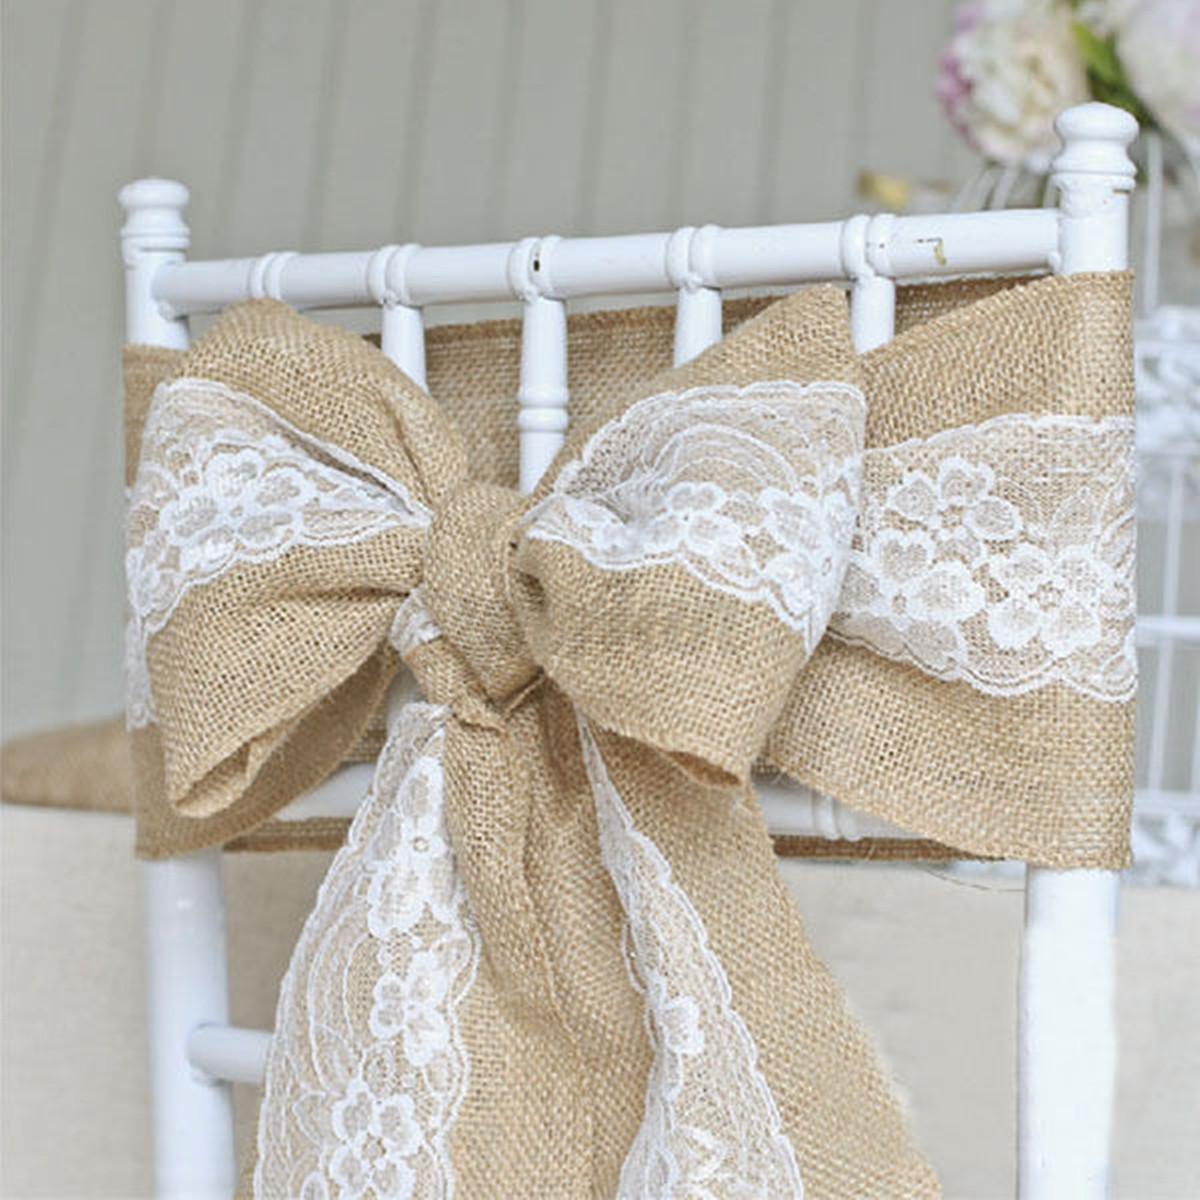 15 x 240cm vintage hessian burlap jute lace chair sashes. Black Bedroom Furniture Sets. Home Design Ideas